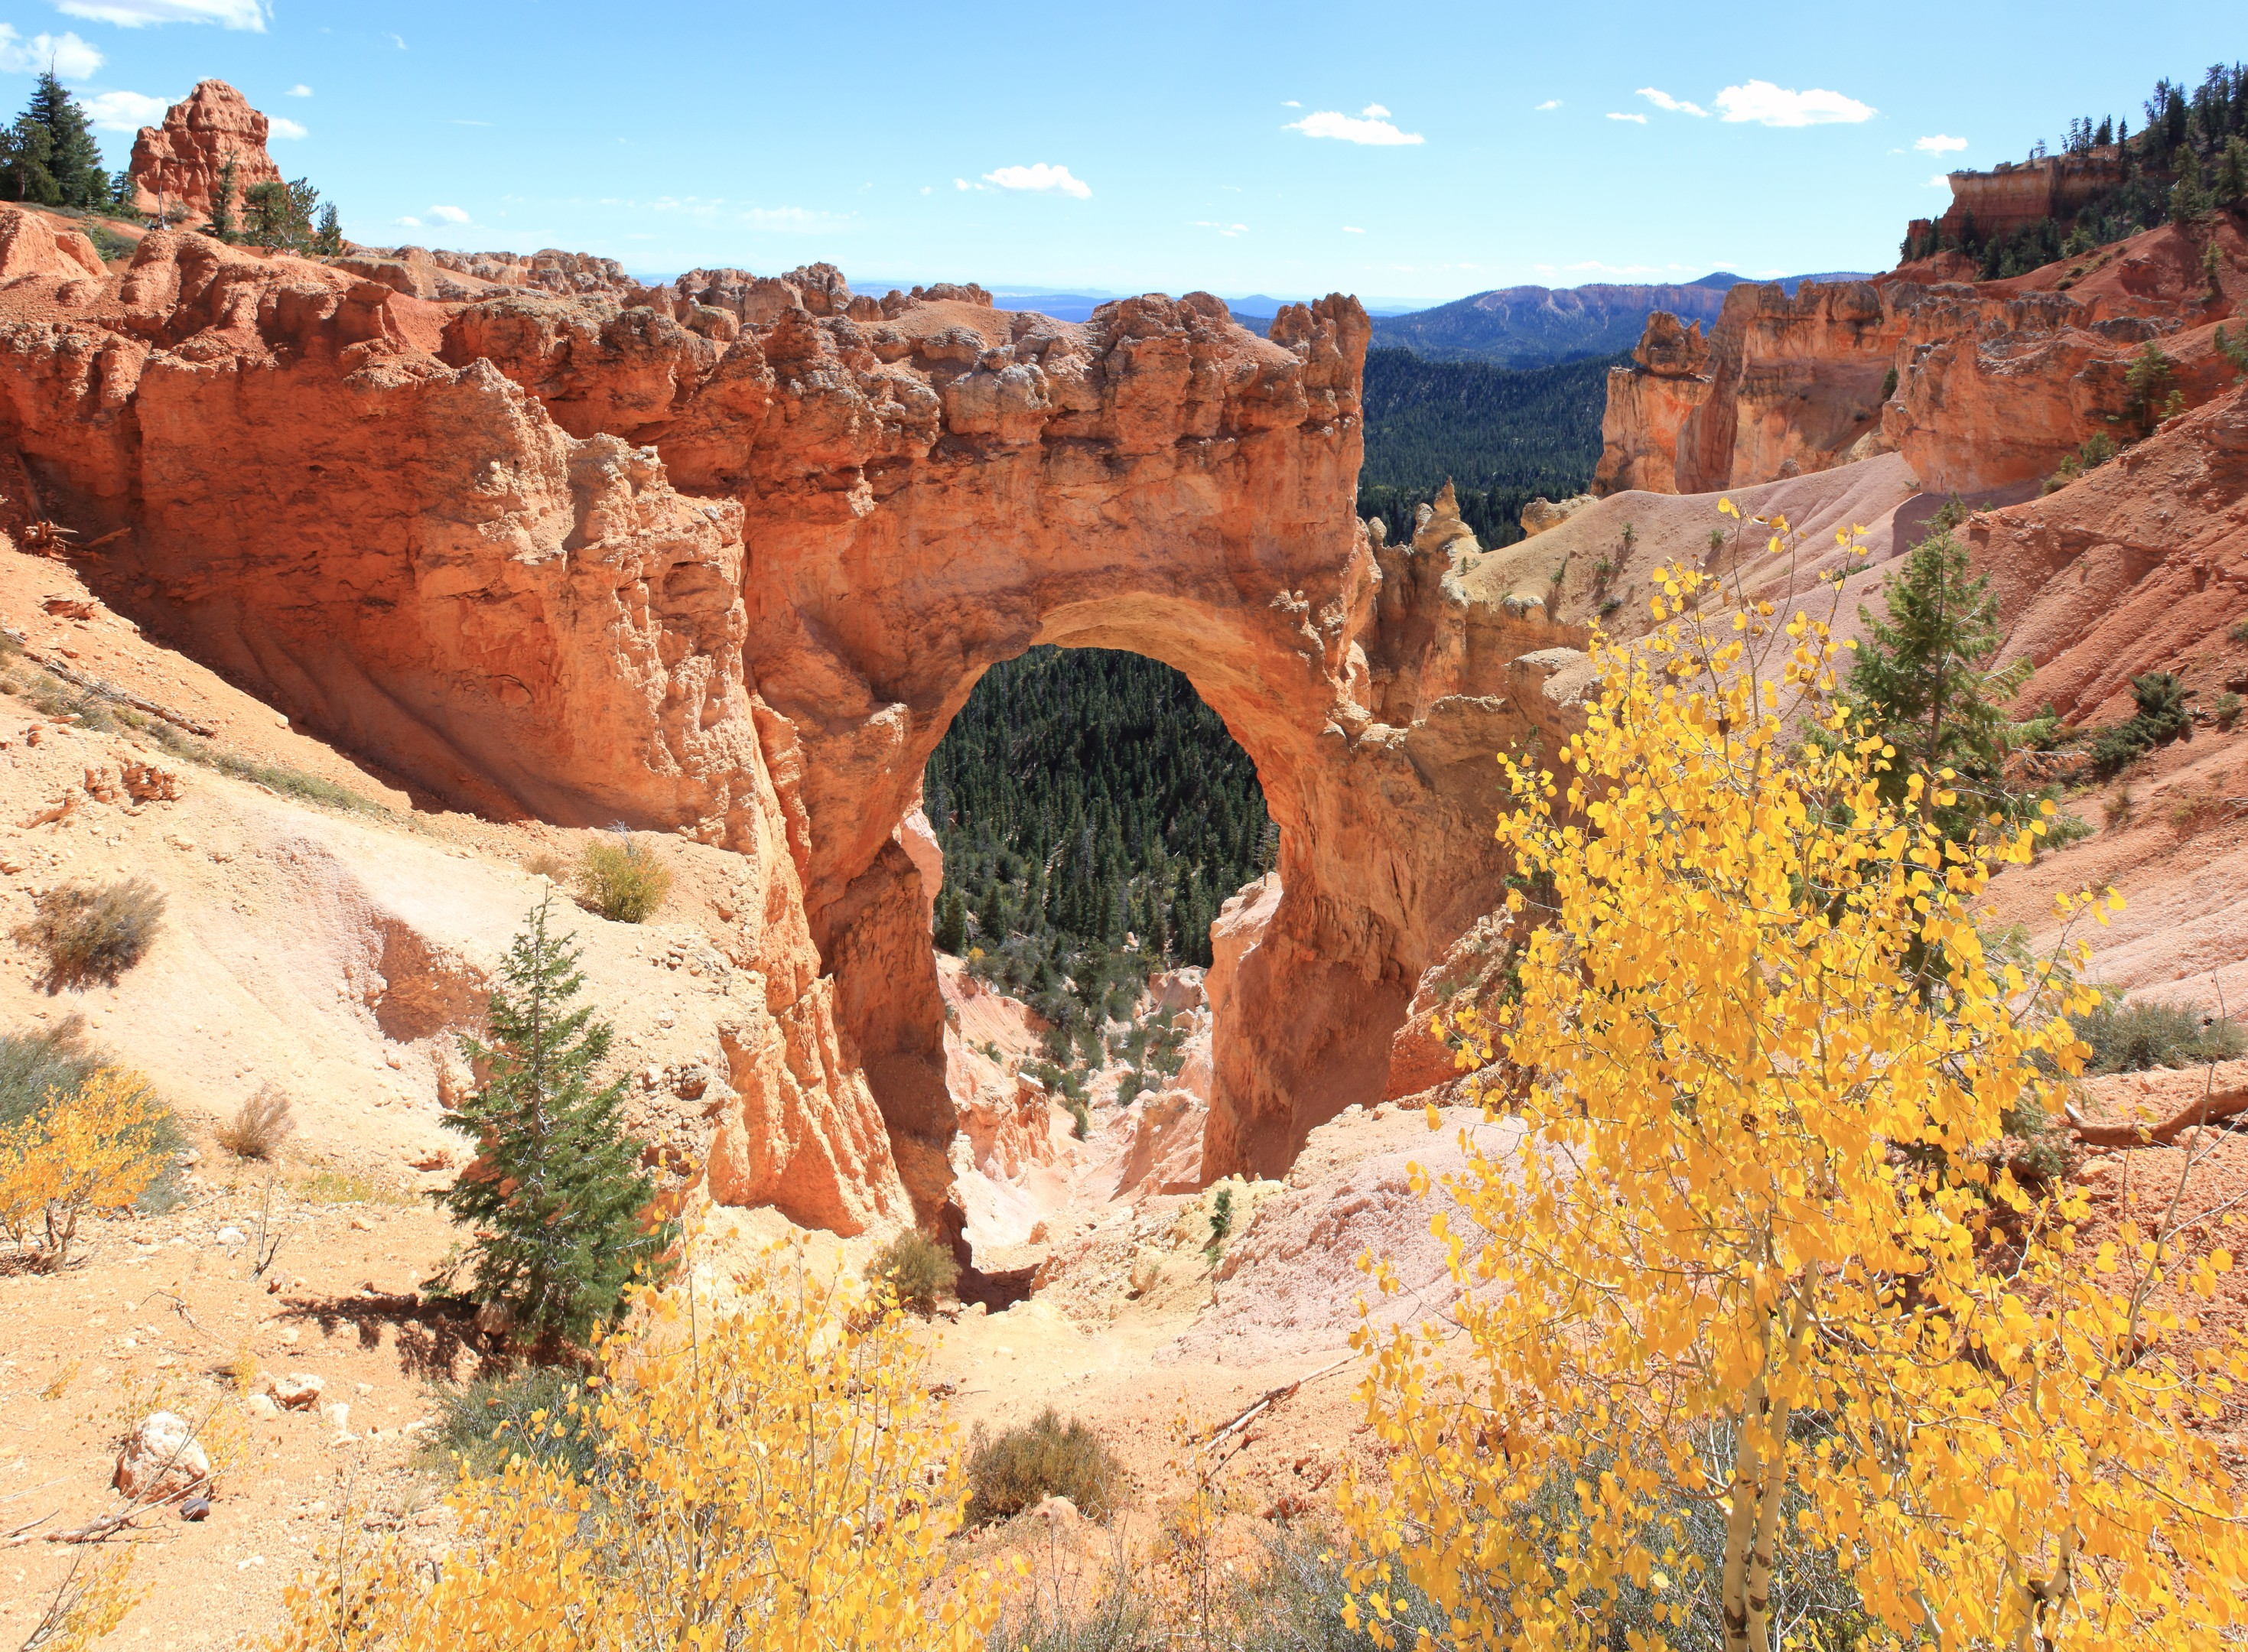 Bryce - Natural Bridge. Looks like an Arch, but technically it's not. Water flow carved this out.